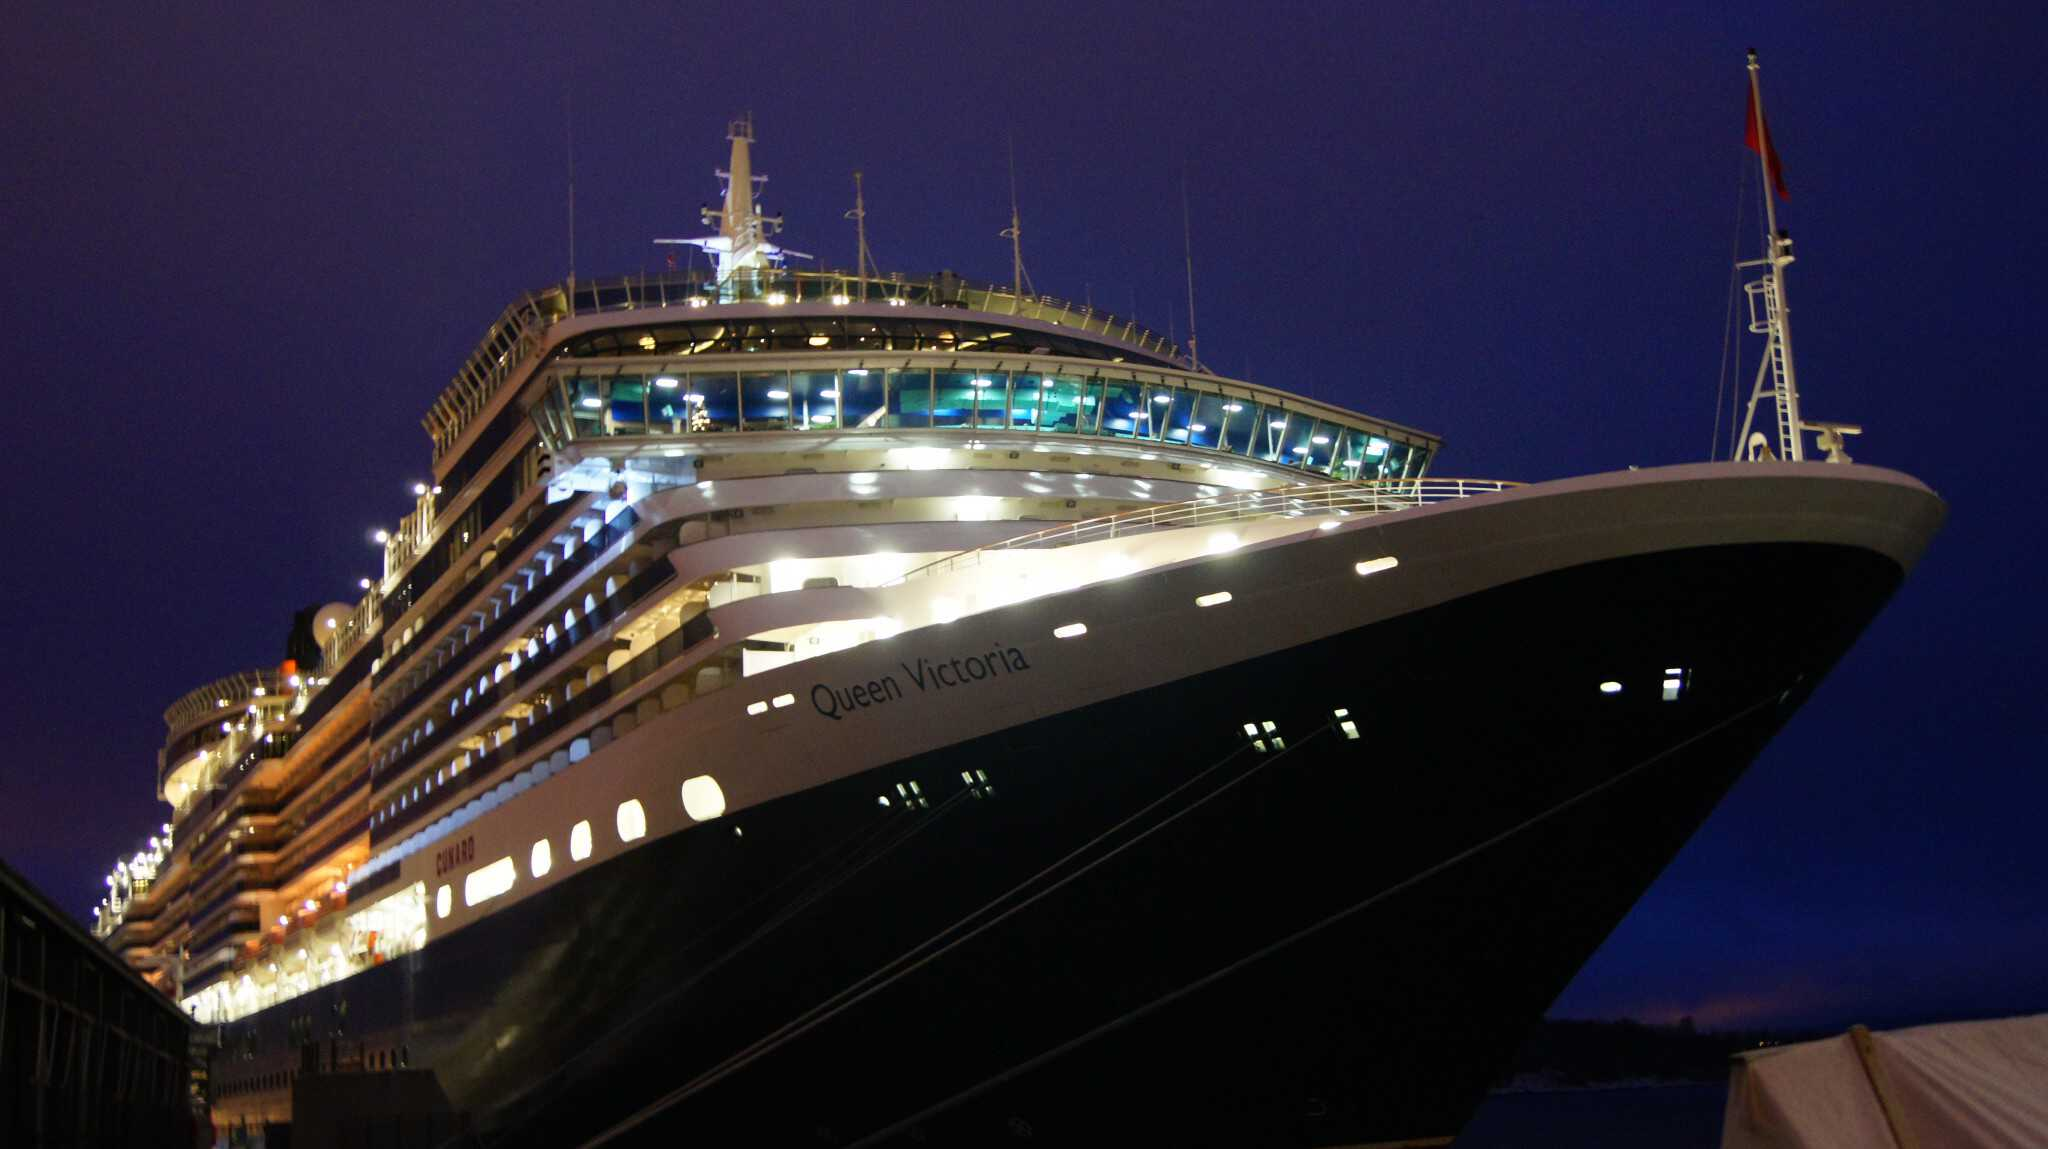 Queen Victoria at dusk in the port of Oslo